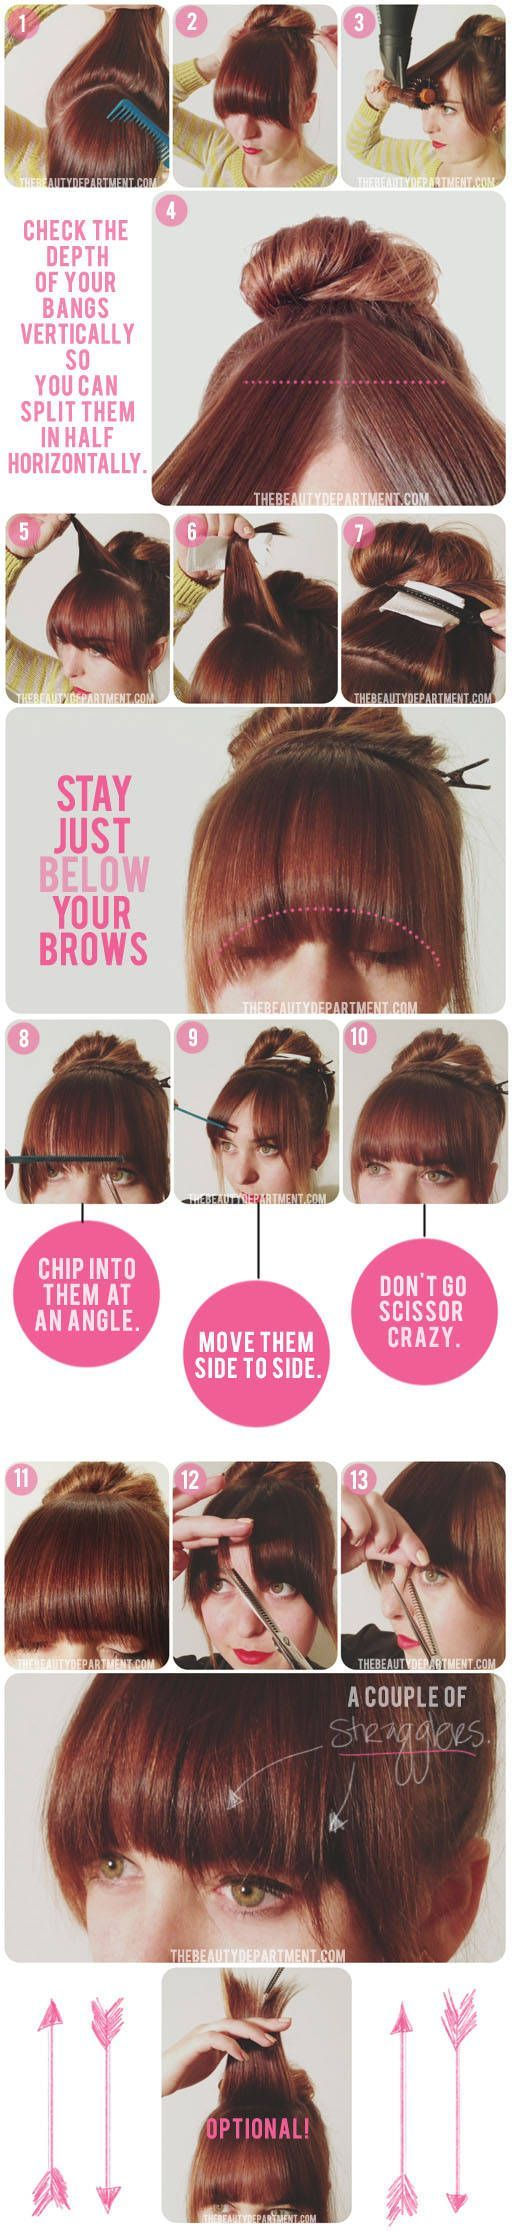 Click here to see 5 DIY bang cutting tutorials that will make messing up your hair impossible!